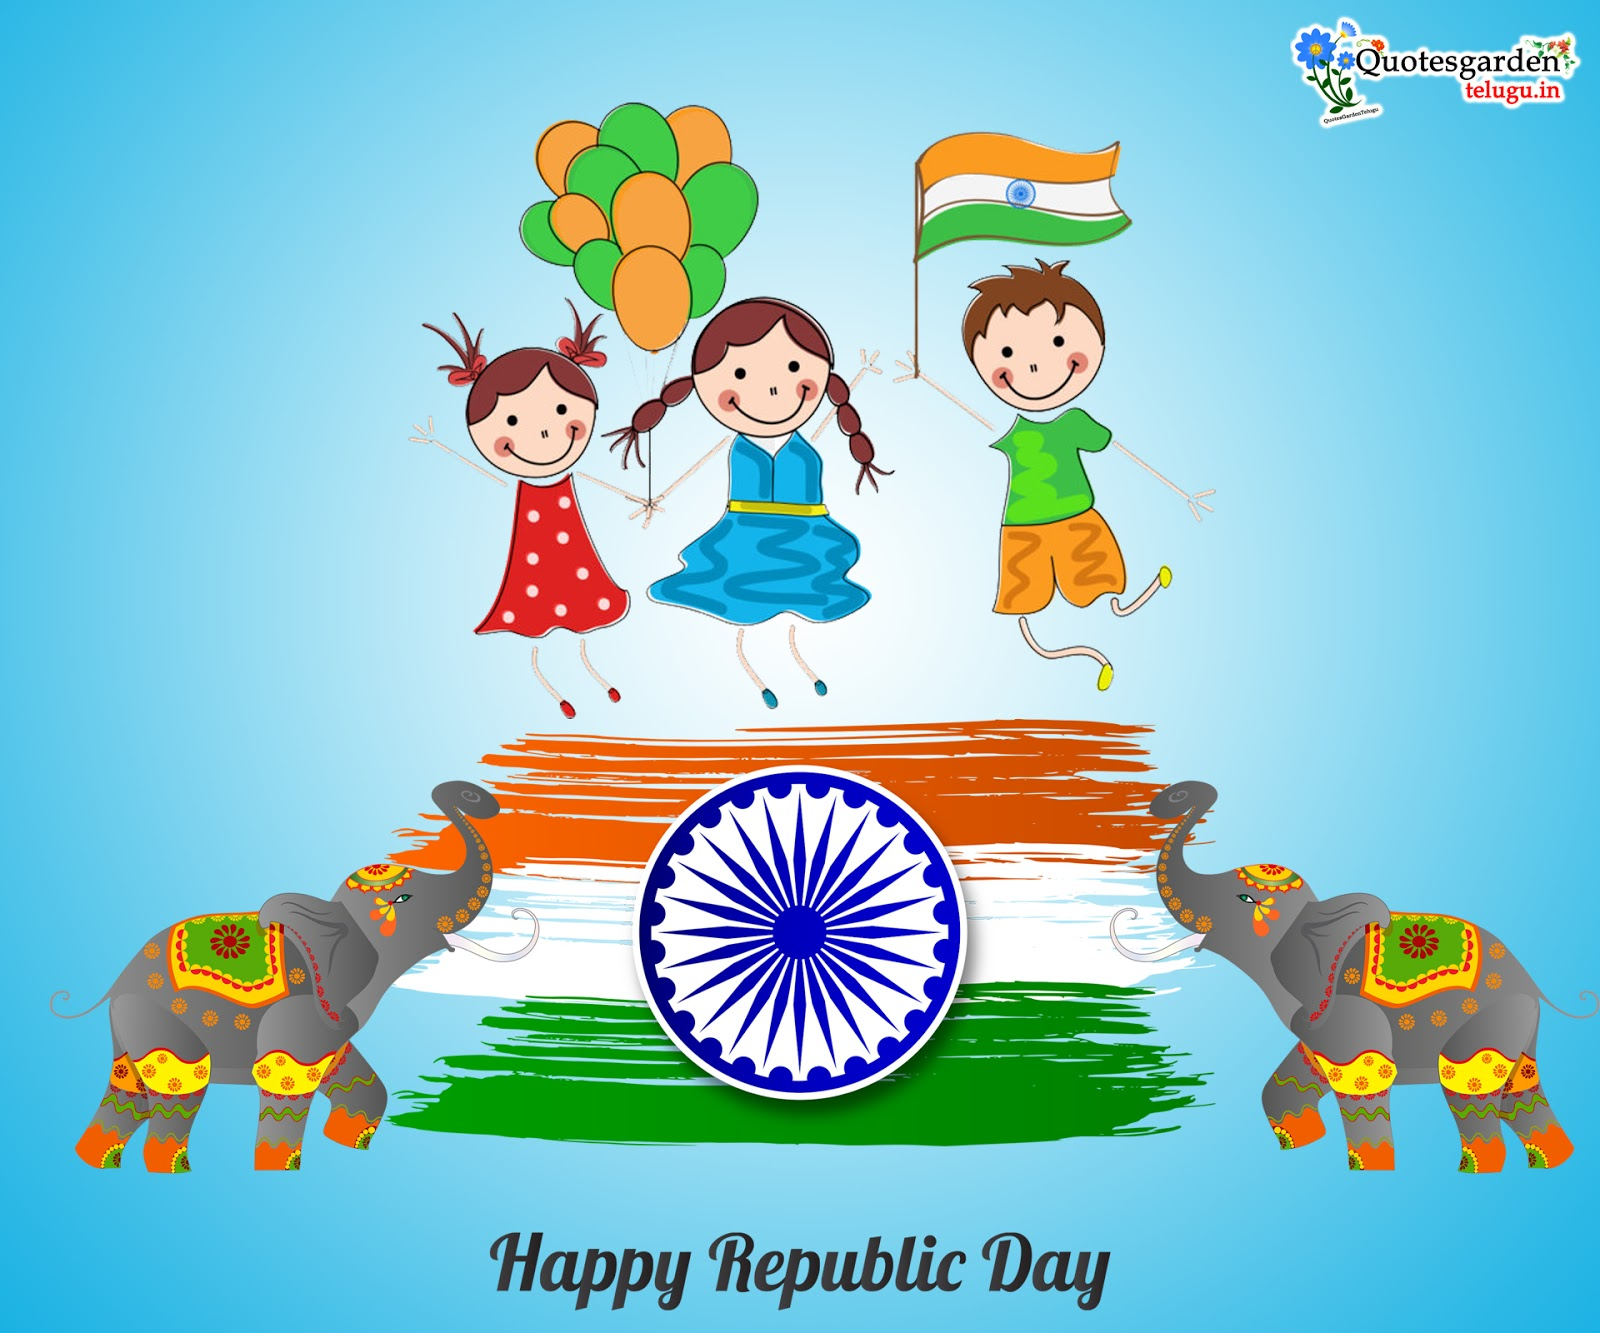 Happy republic day telugu greetings wishes images messages